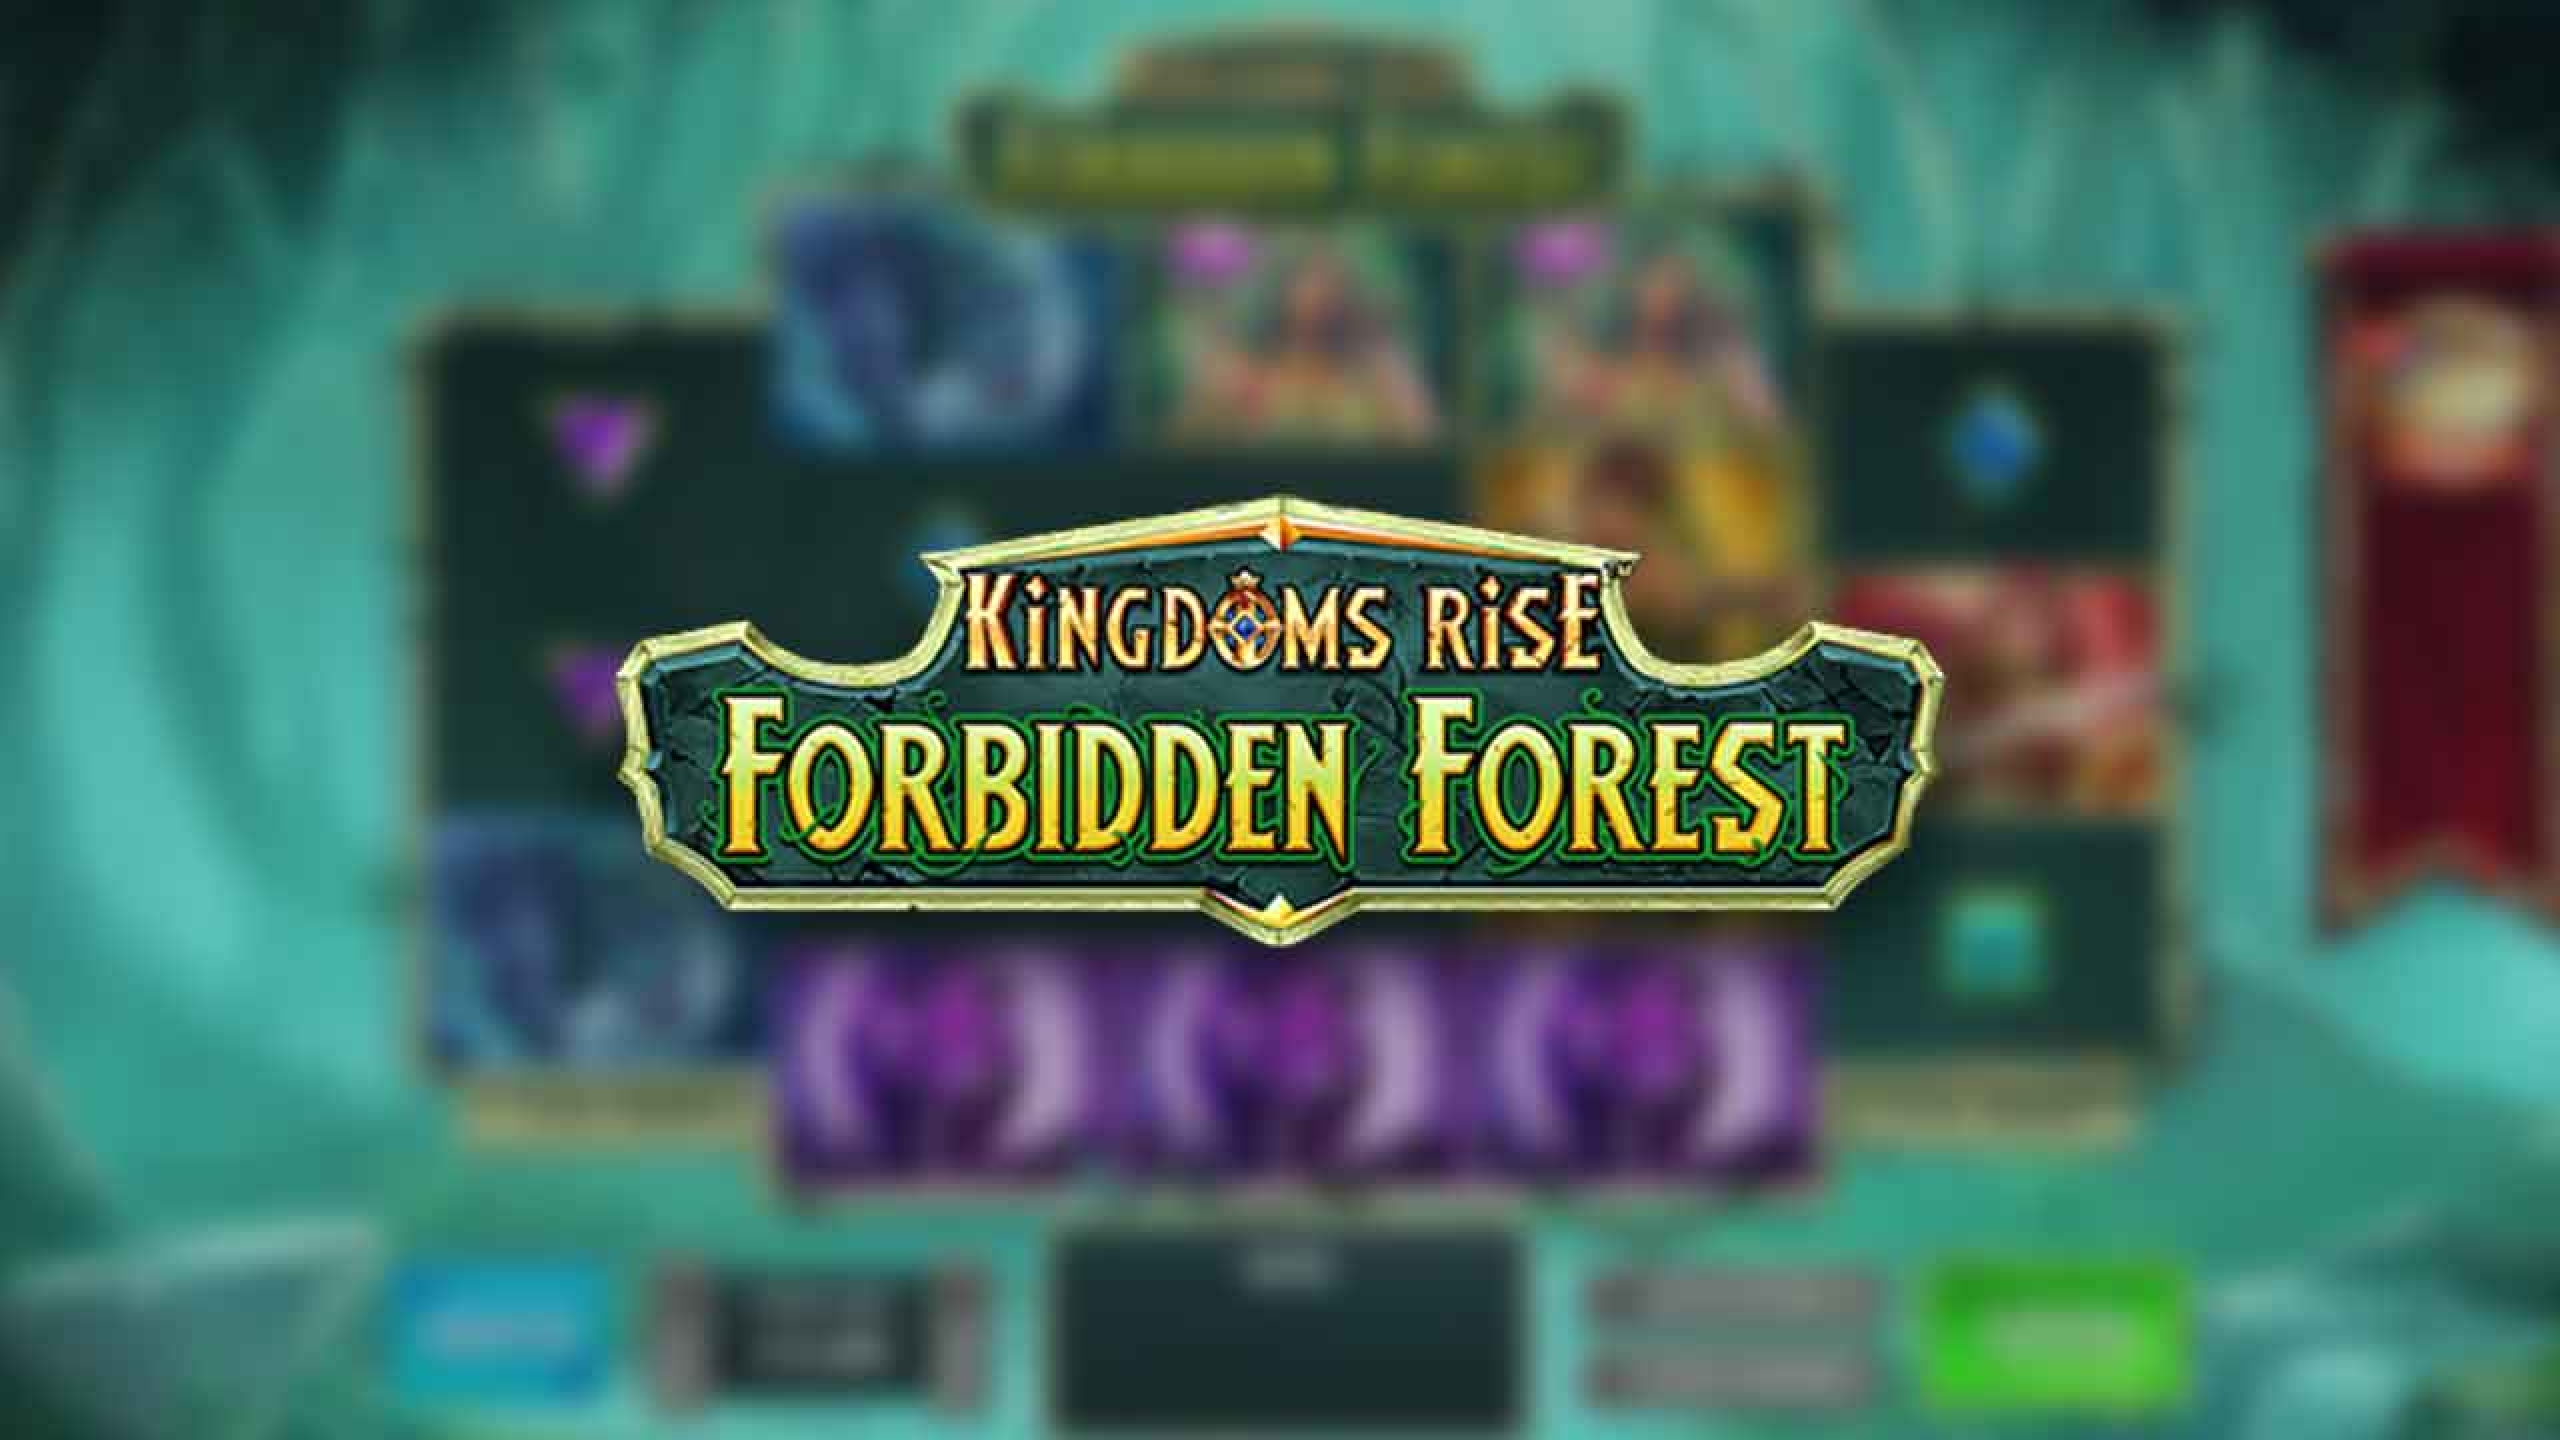 The Kingdoms Rise: Forbidden Forest Online Slot Demo Game by Playtech Origins